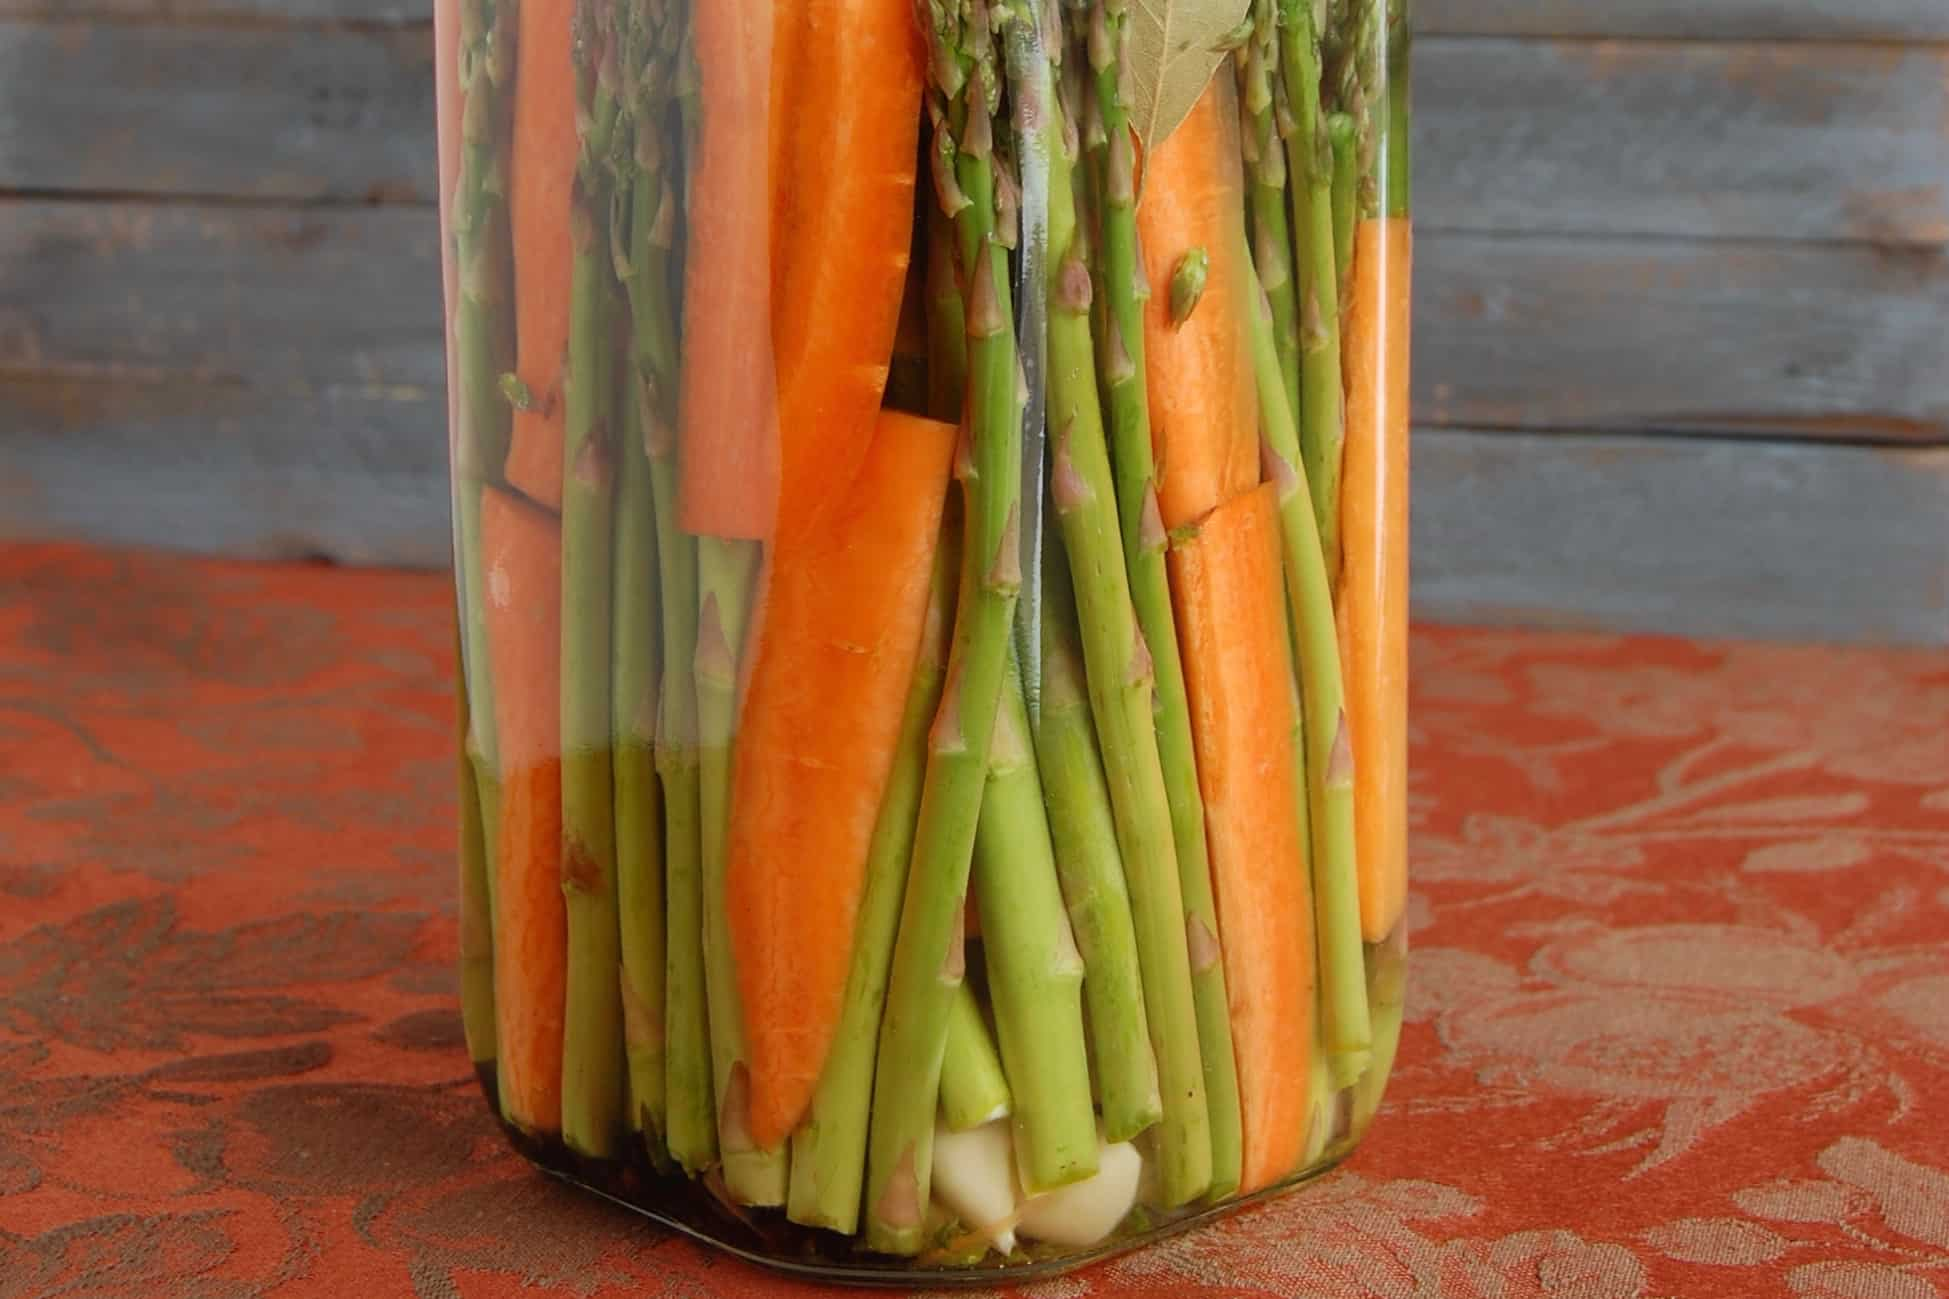 Asparagus and Carrot Pickles